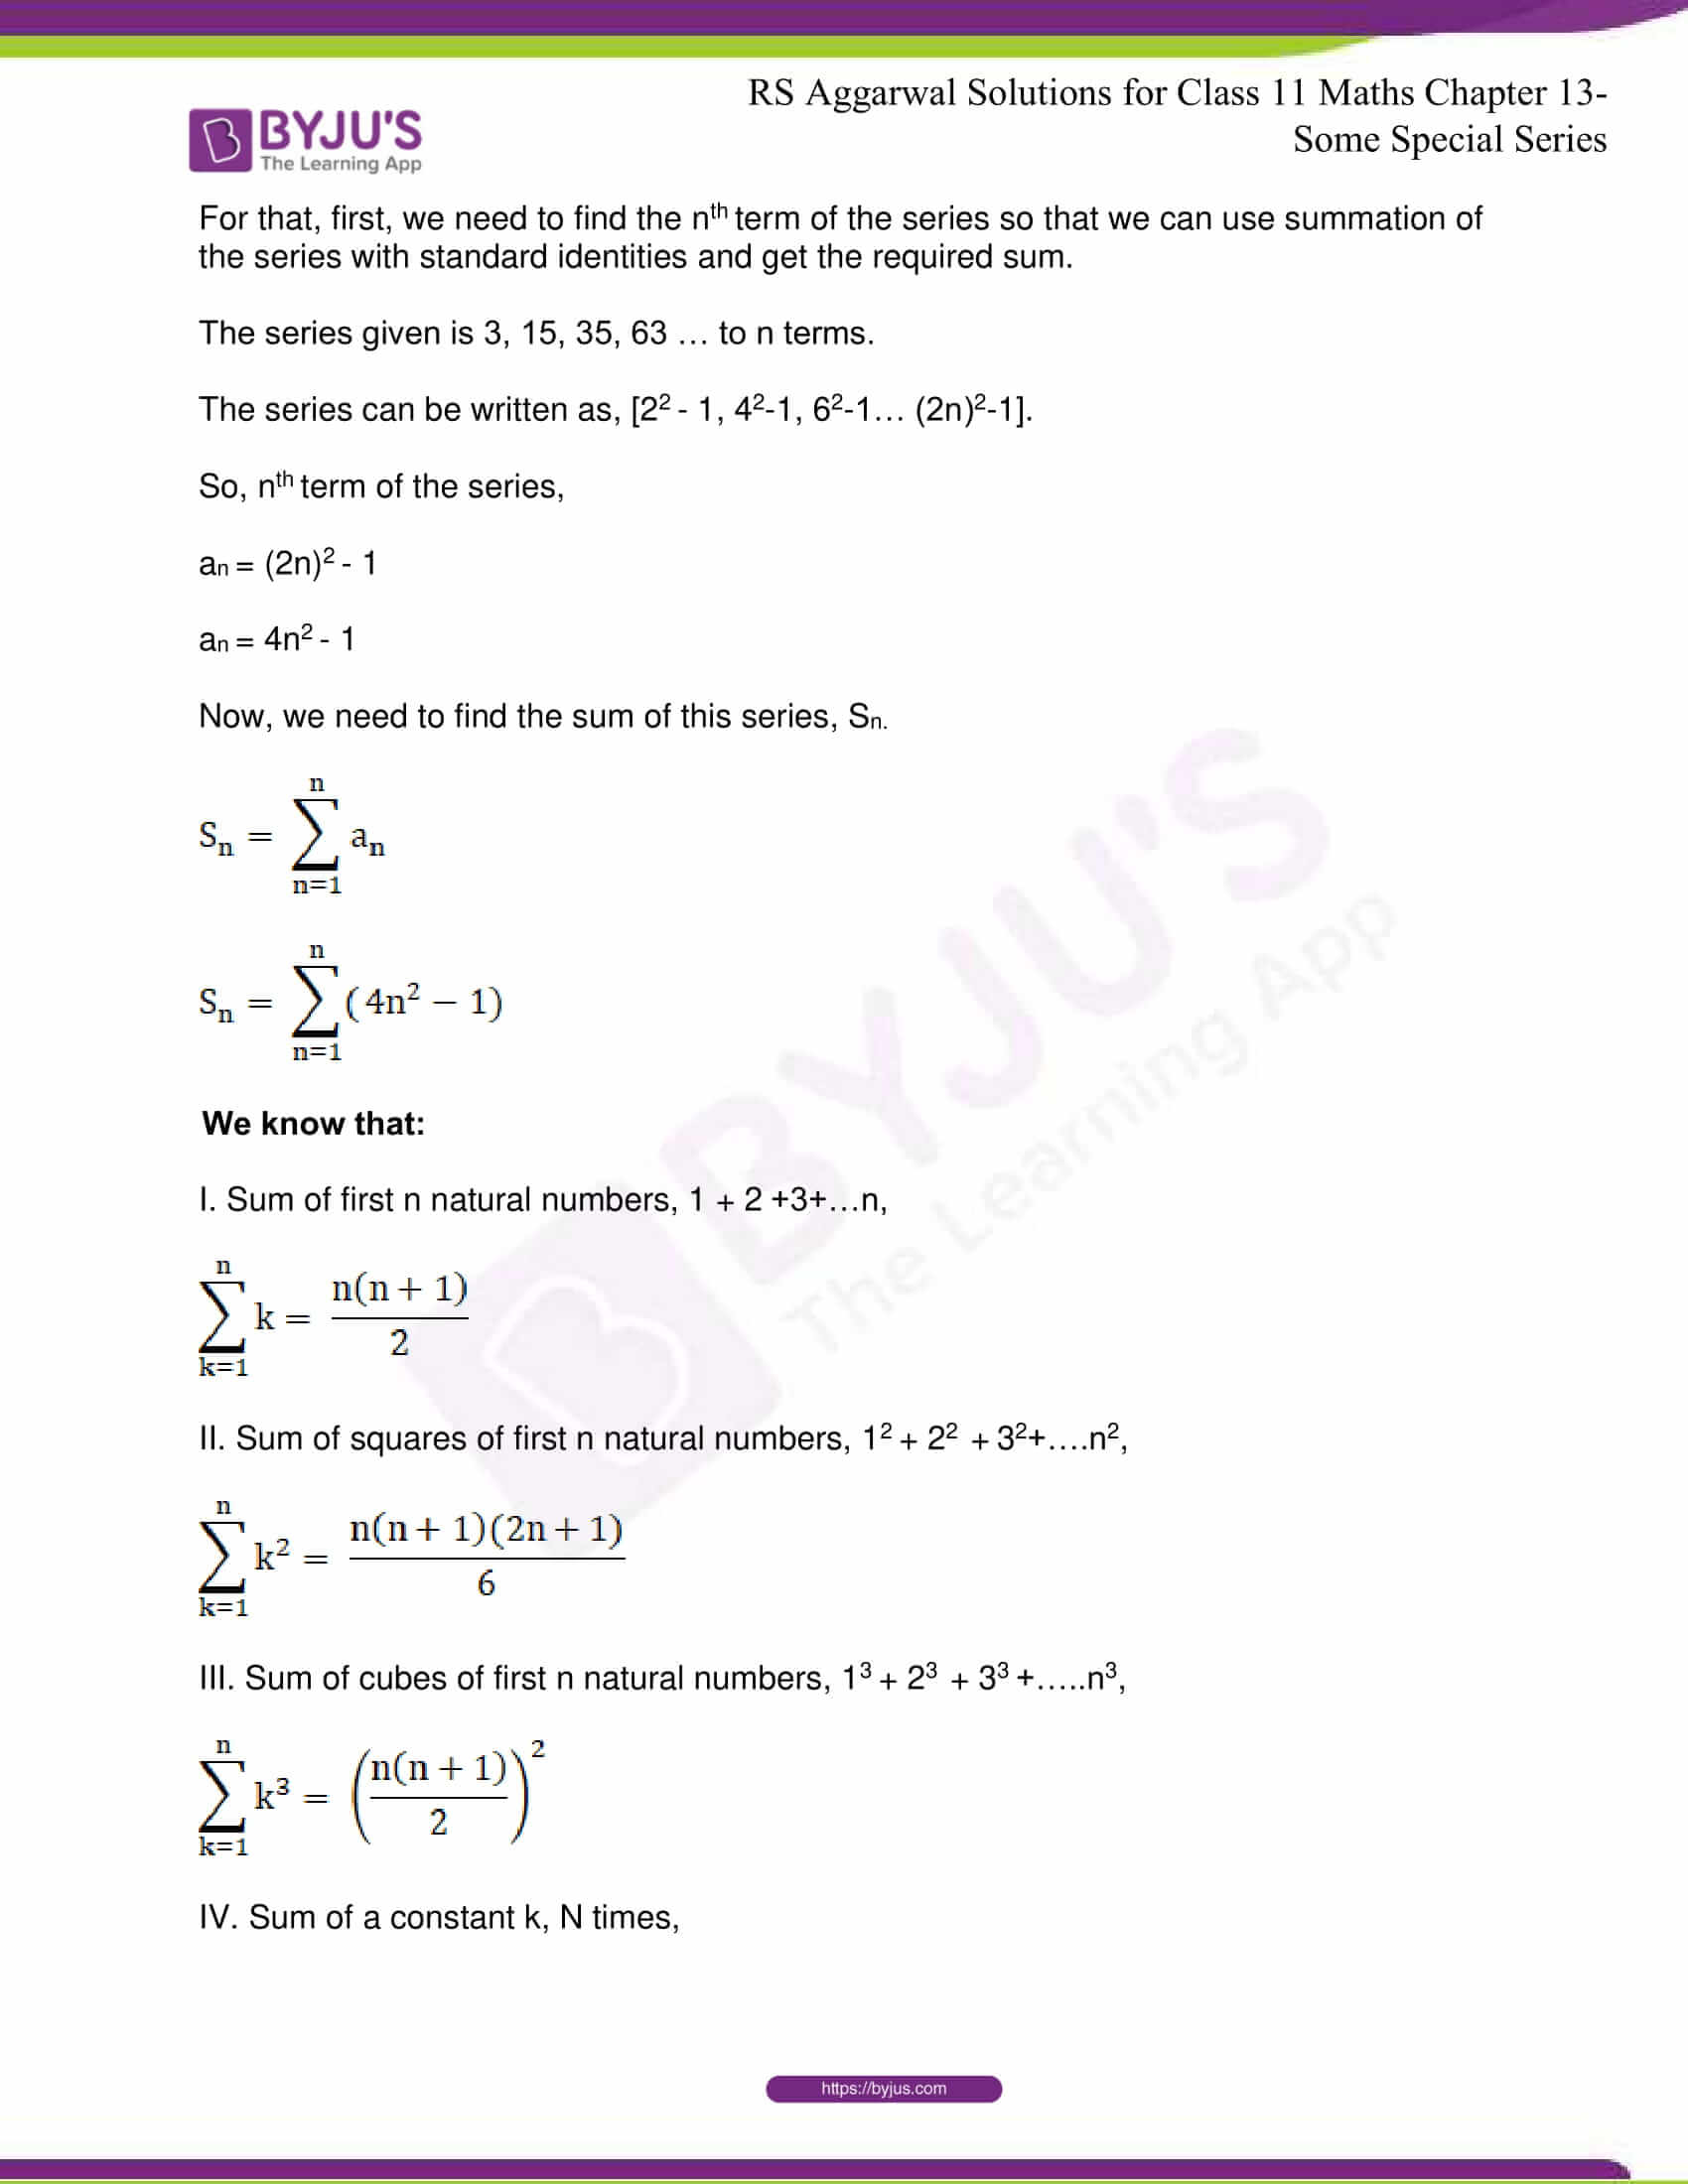 rsaggarwal solutions class 11 maths chapter 13 38